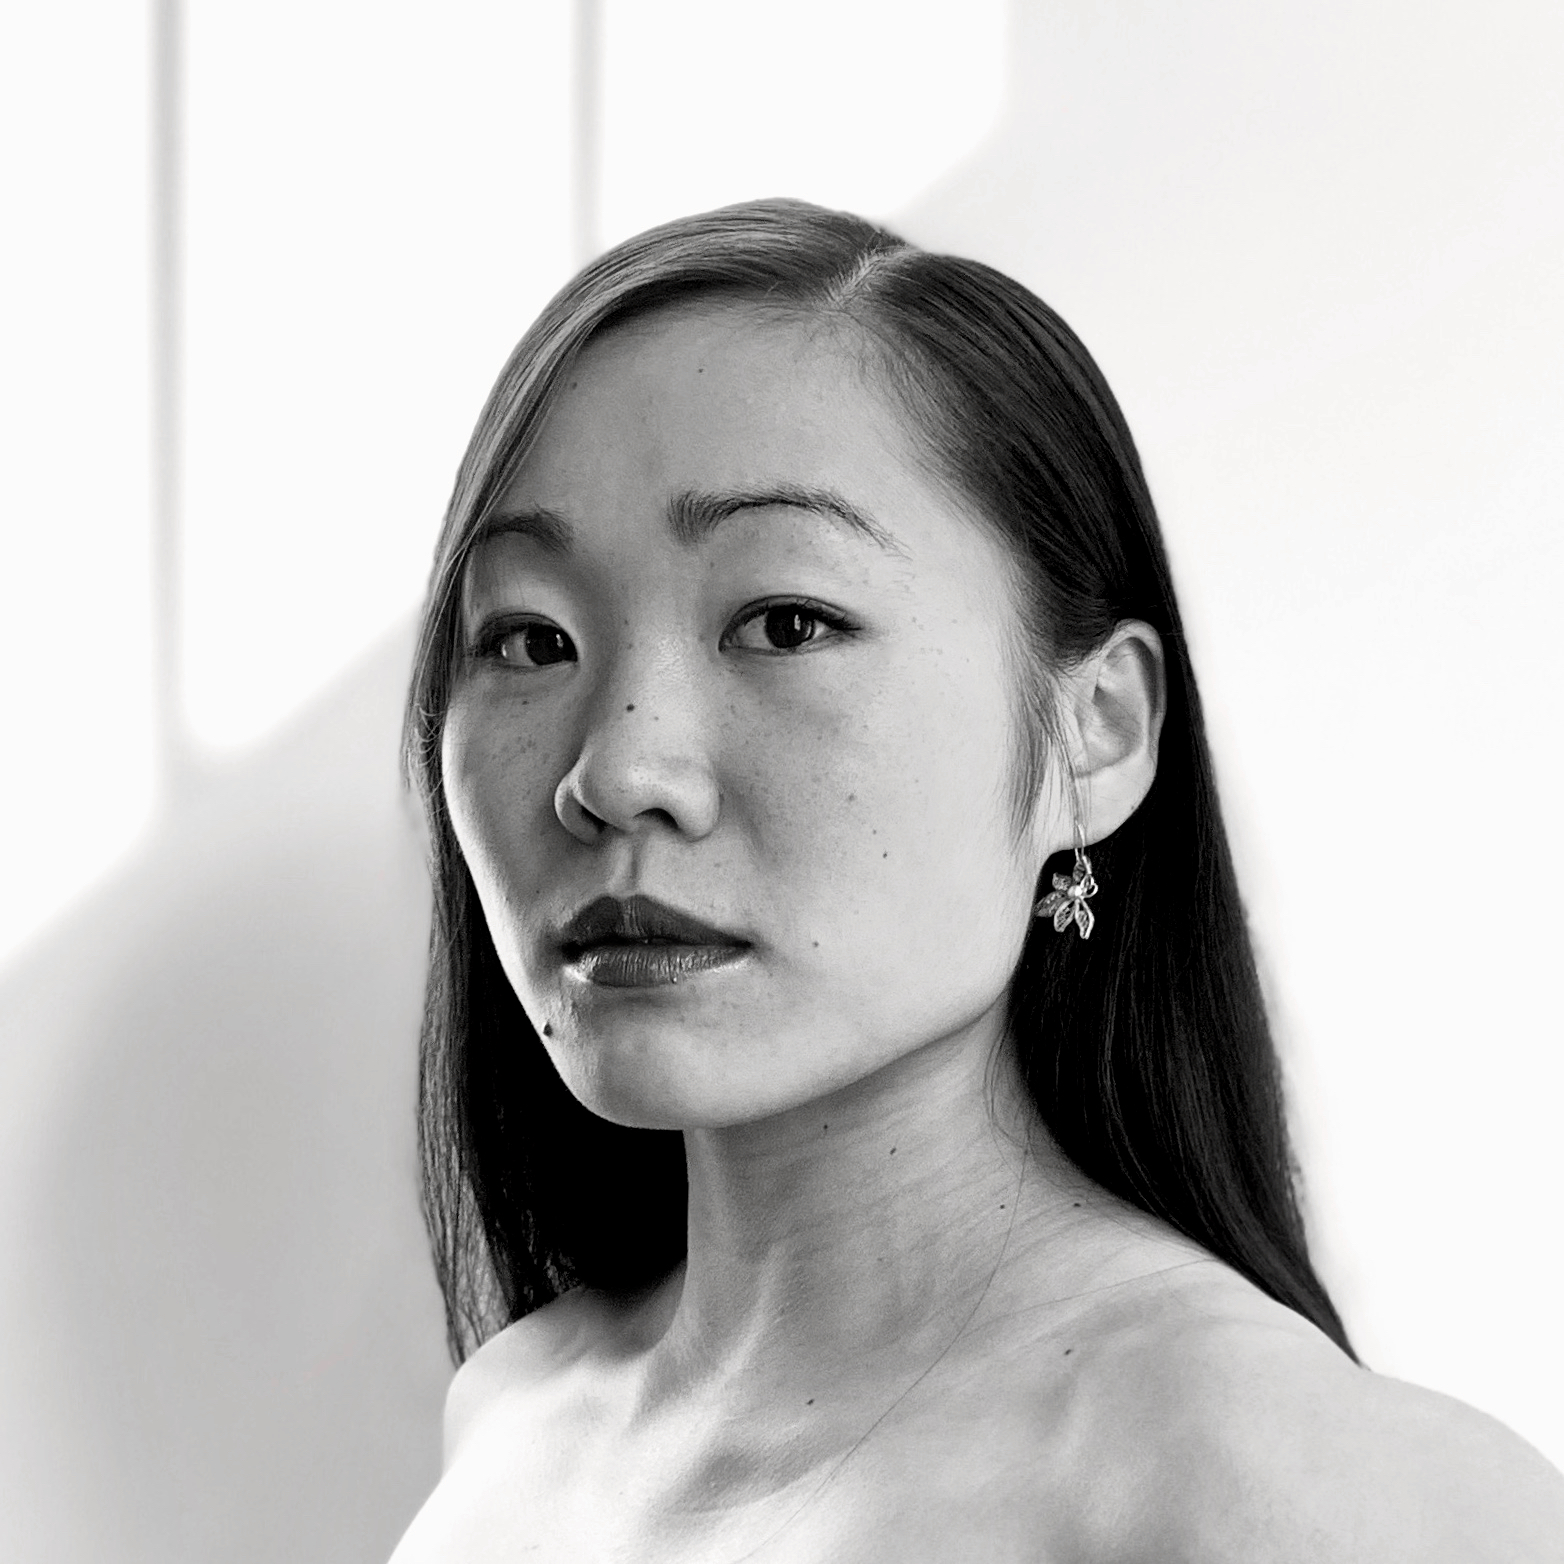 Black & white portrait of ODC/Dance Company dancer Cora Cliburn